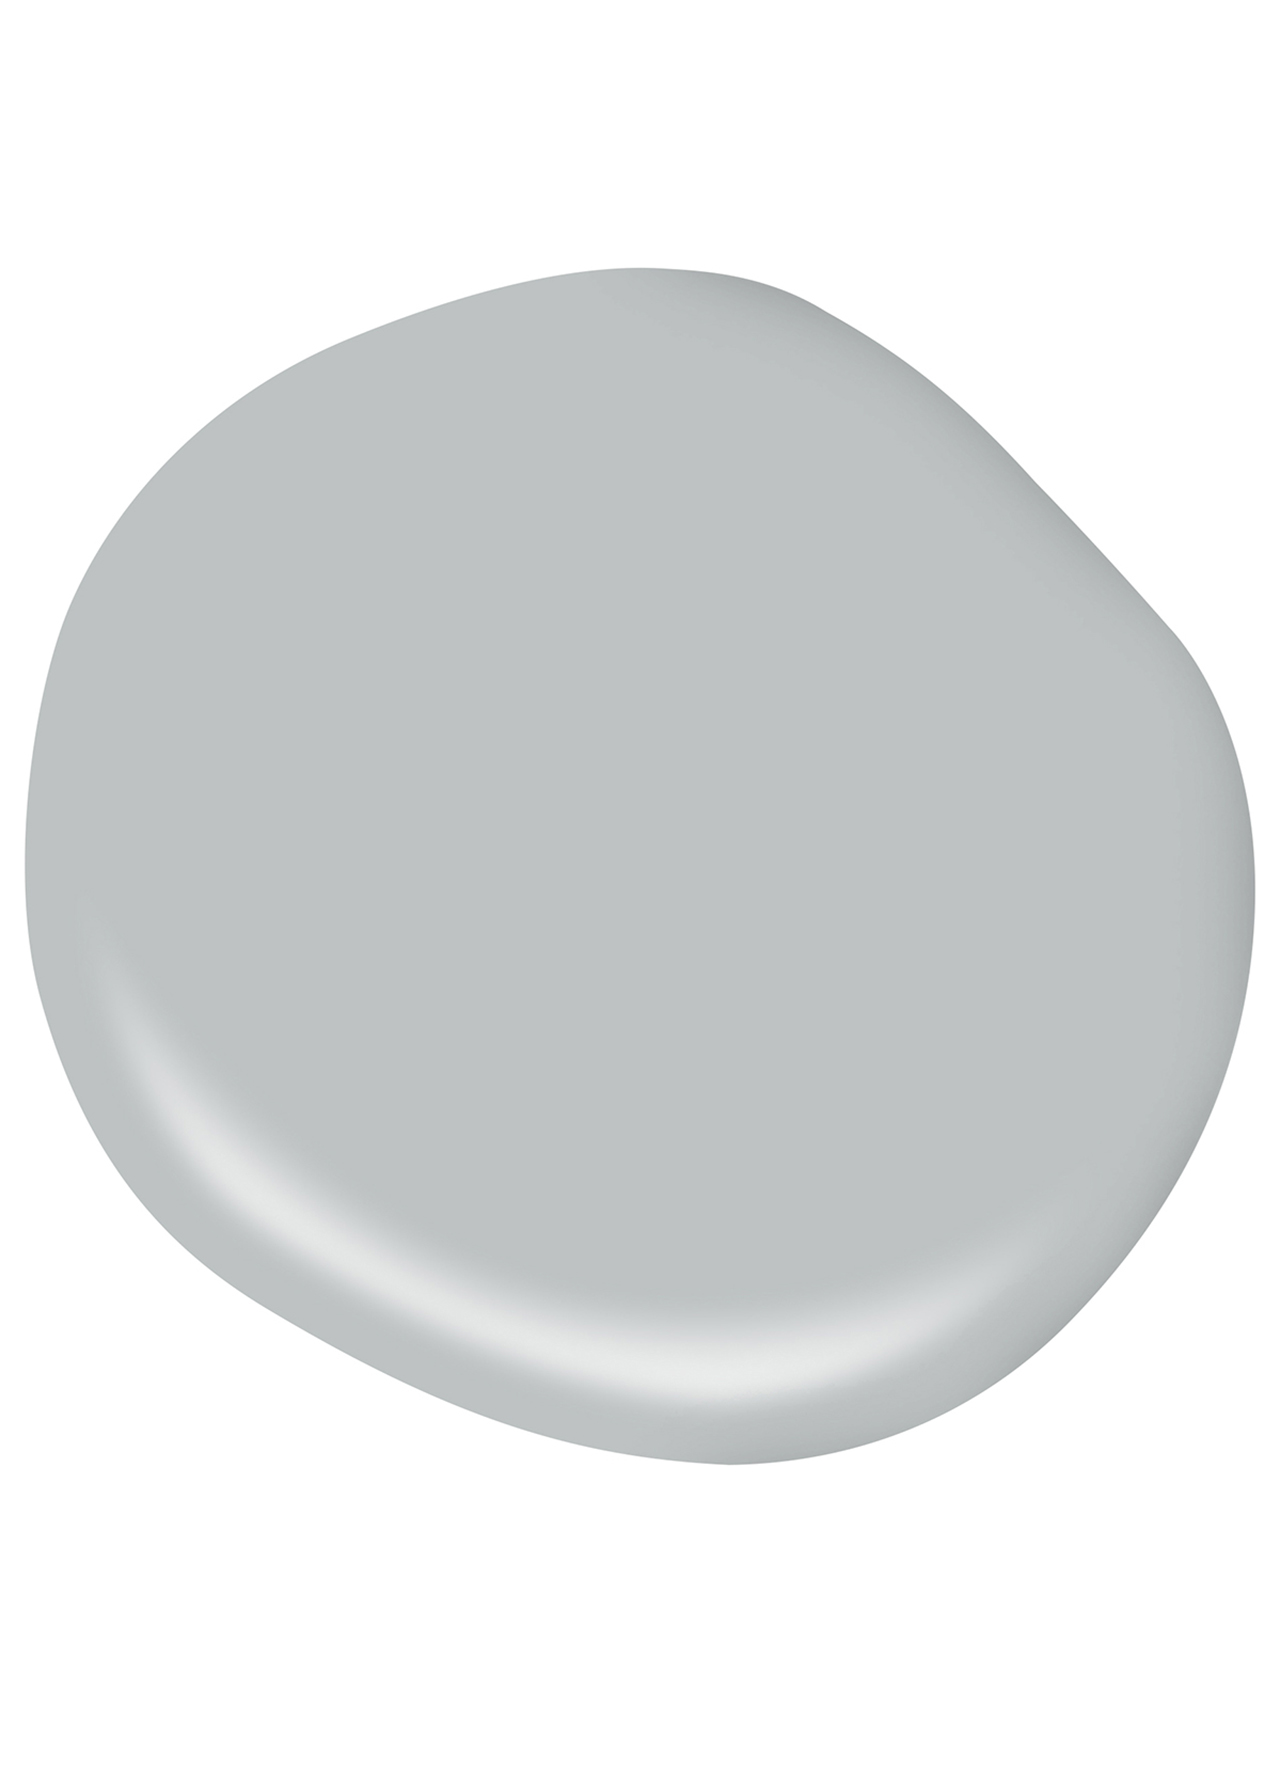 Silvery Gray color swatch